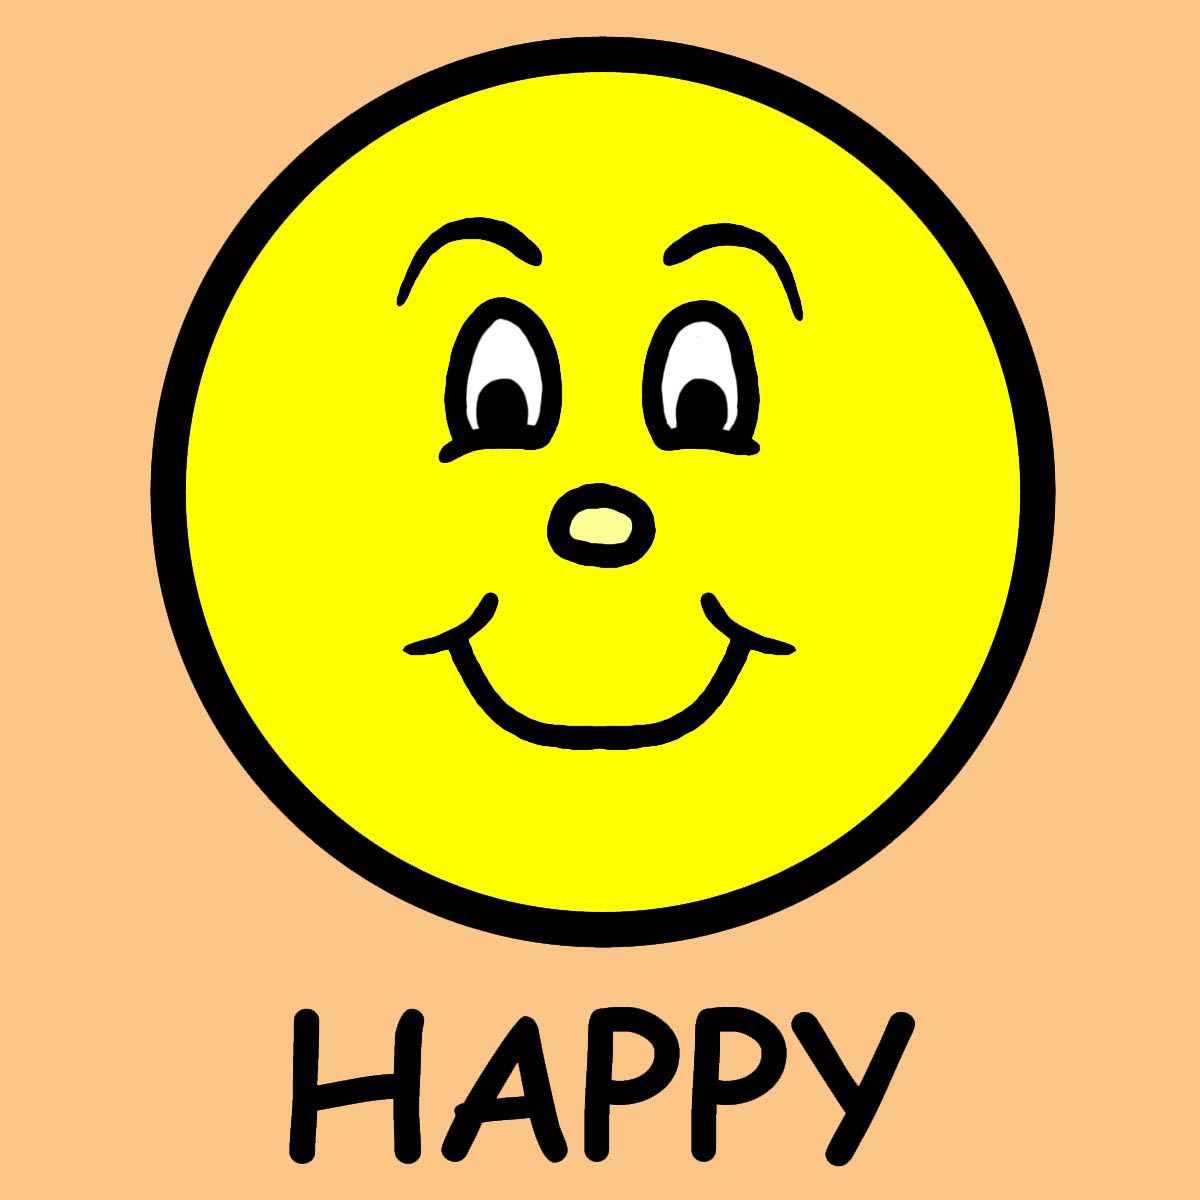 Happy Face Images - ClipArt Best